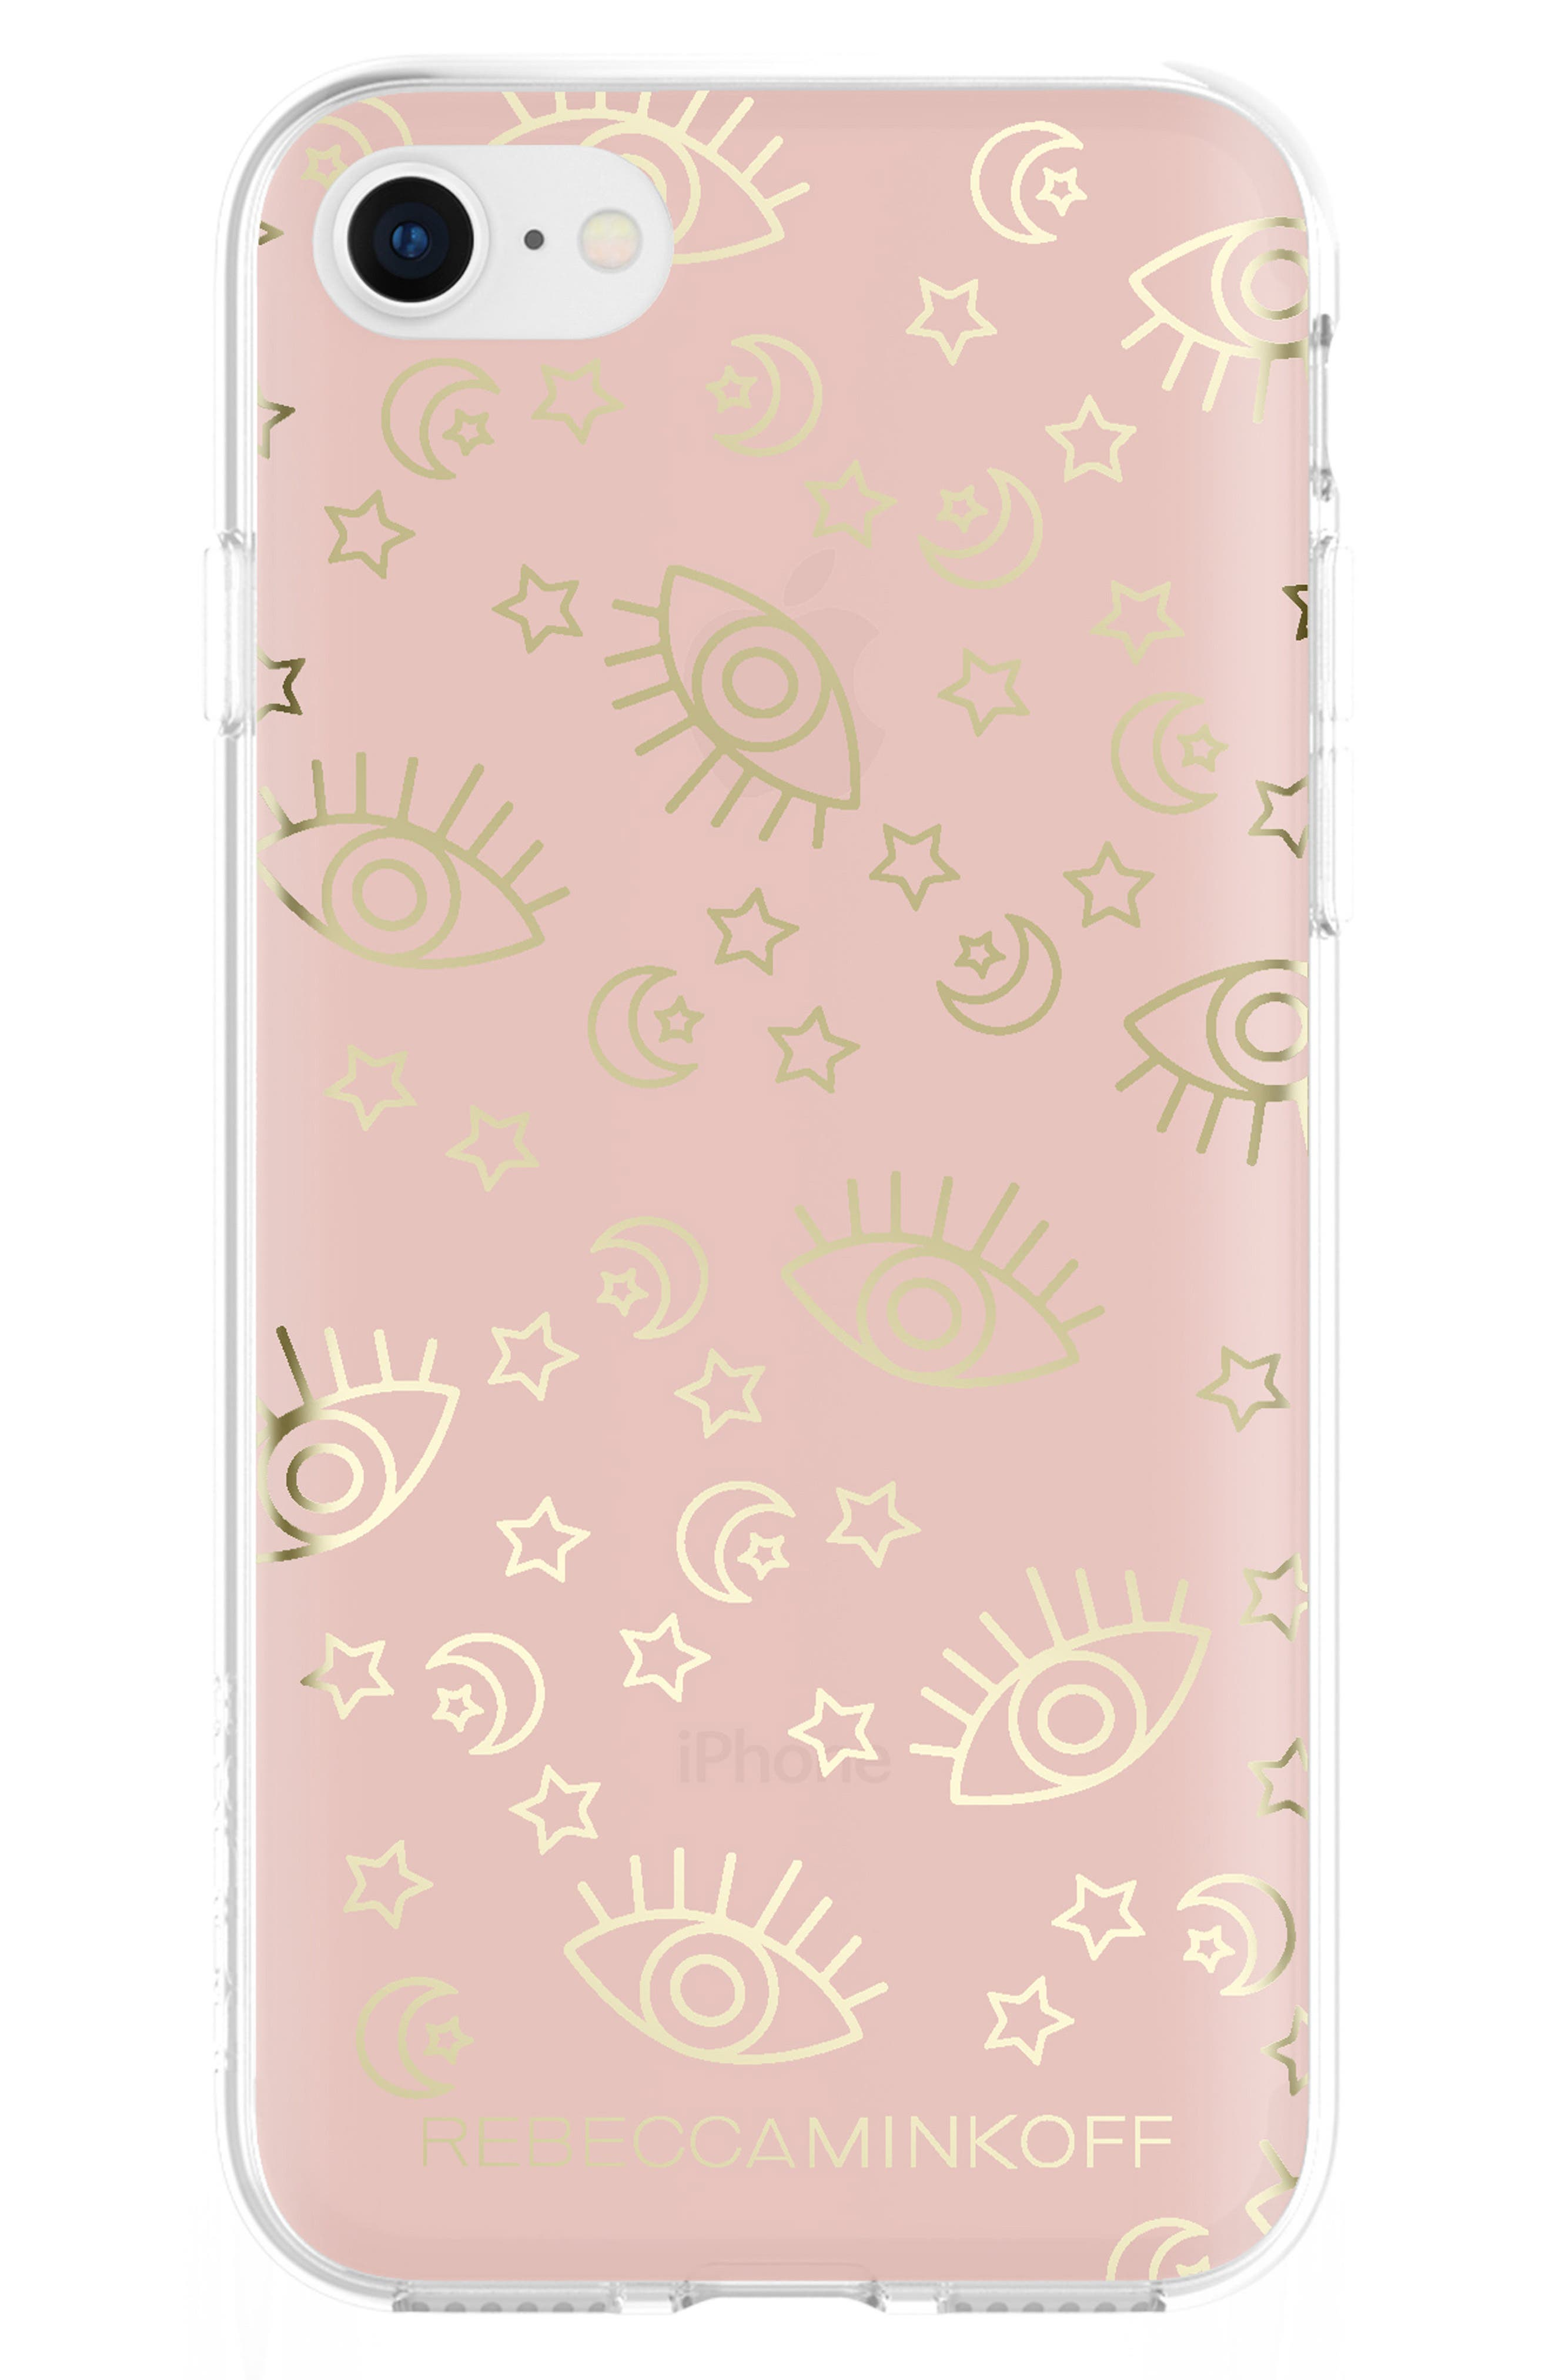 Metallic Galaxy Icon iPhone 7/8 & 7/8 Plus Case,                         Main,                         color, Rose Gold/ Gold Foil